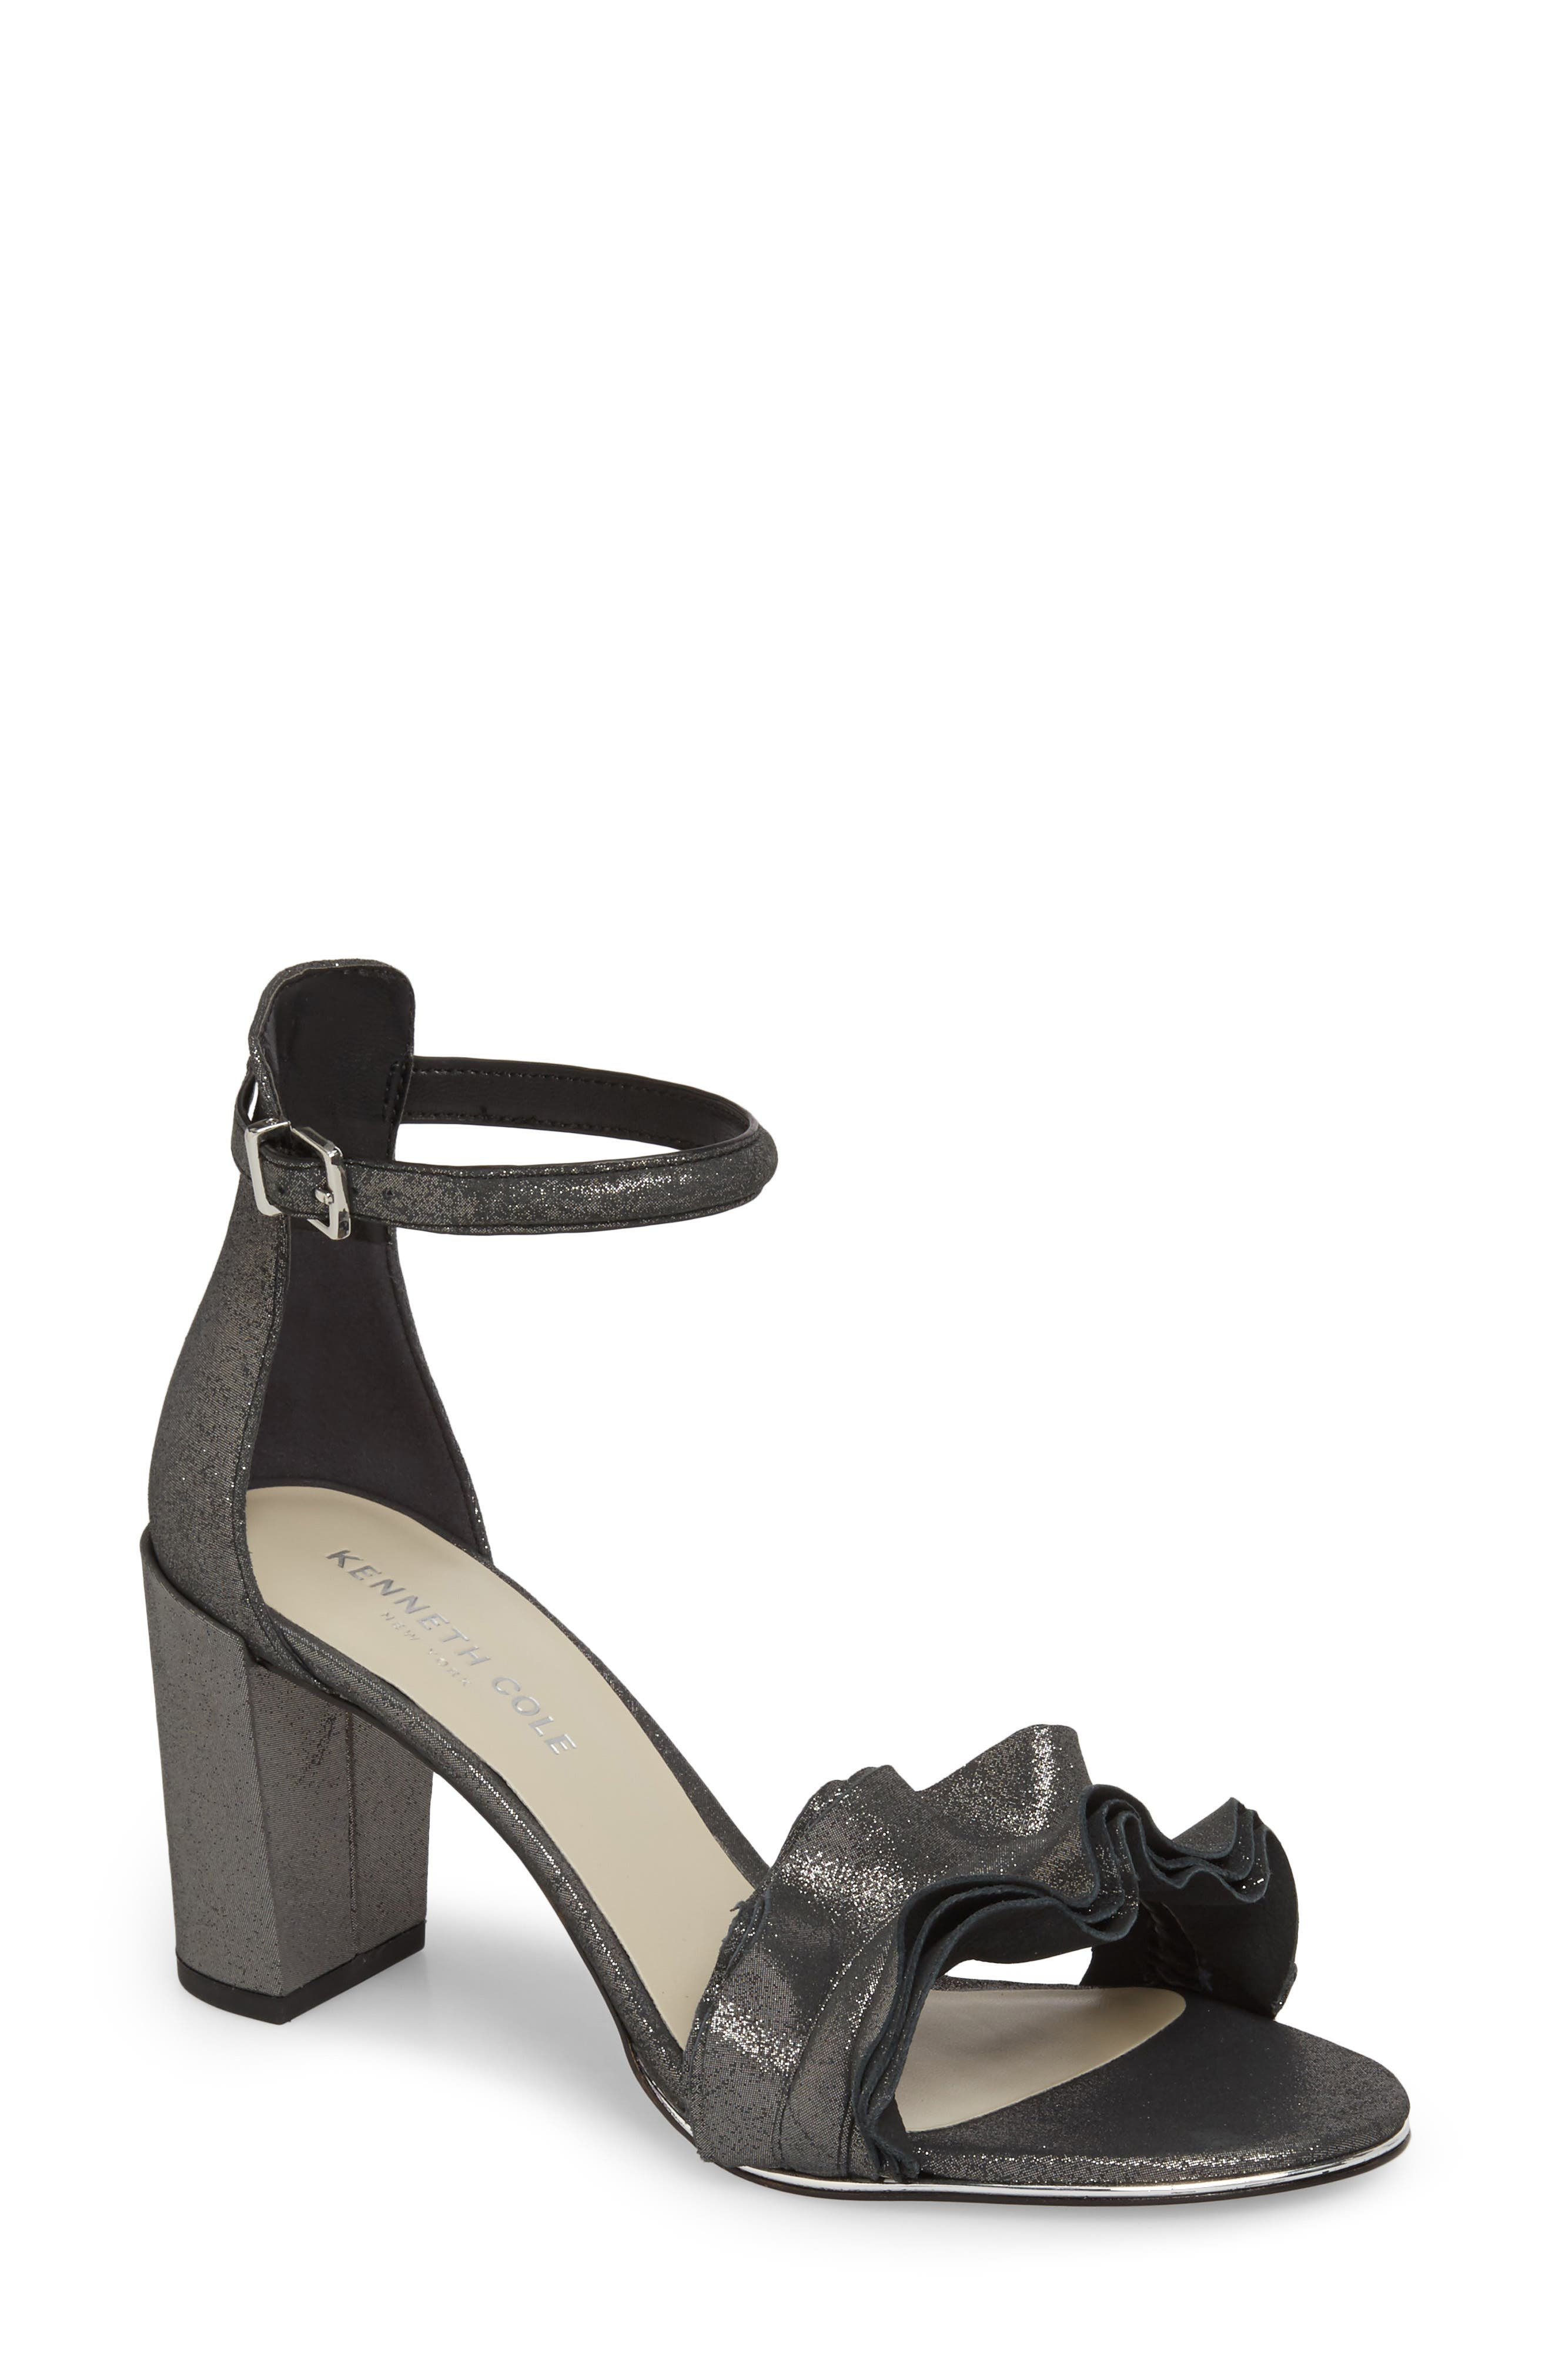 Main Image - Kenneth Cole New York Langley Sandal (Women)